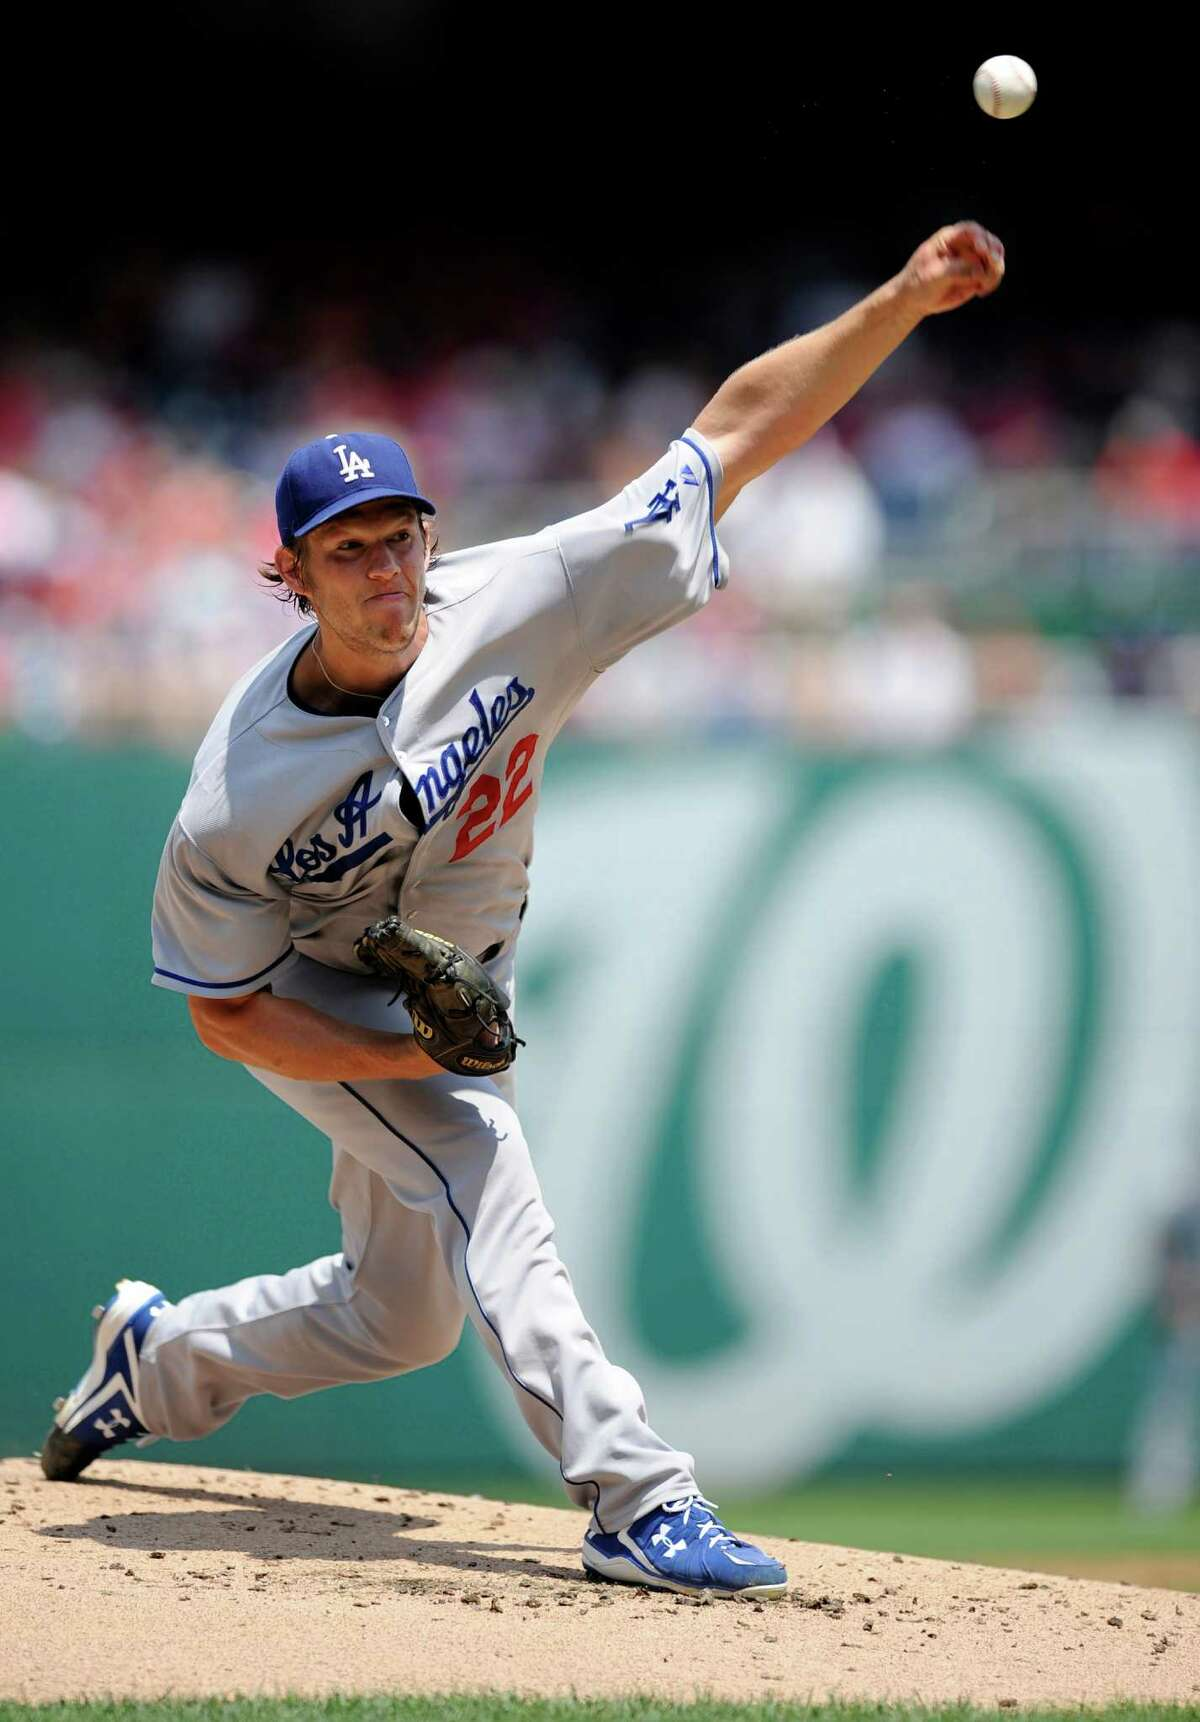 FILE - In this July 21, 2013, file photo, Los Angeles Dodgers starting pitcher Clayton Kershaw delivers a pitch against the Washington Nationals during the first inning of a baseball game in Washington. Kershaw won the National League Cy Young Award, Wednesday, Nov. 13, 2013. (AP Photo/Nick Wass, File) ORG XMIT: NY181